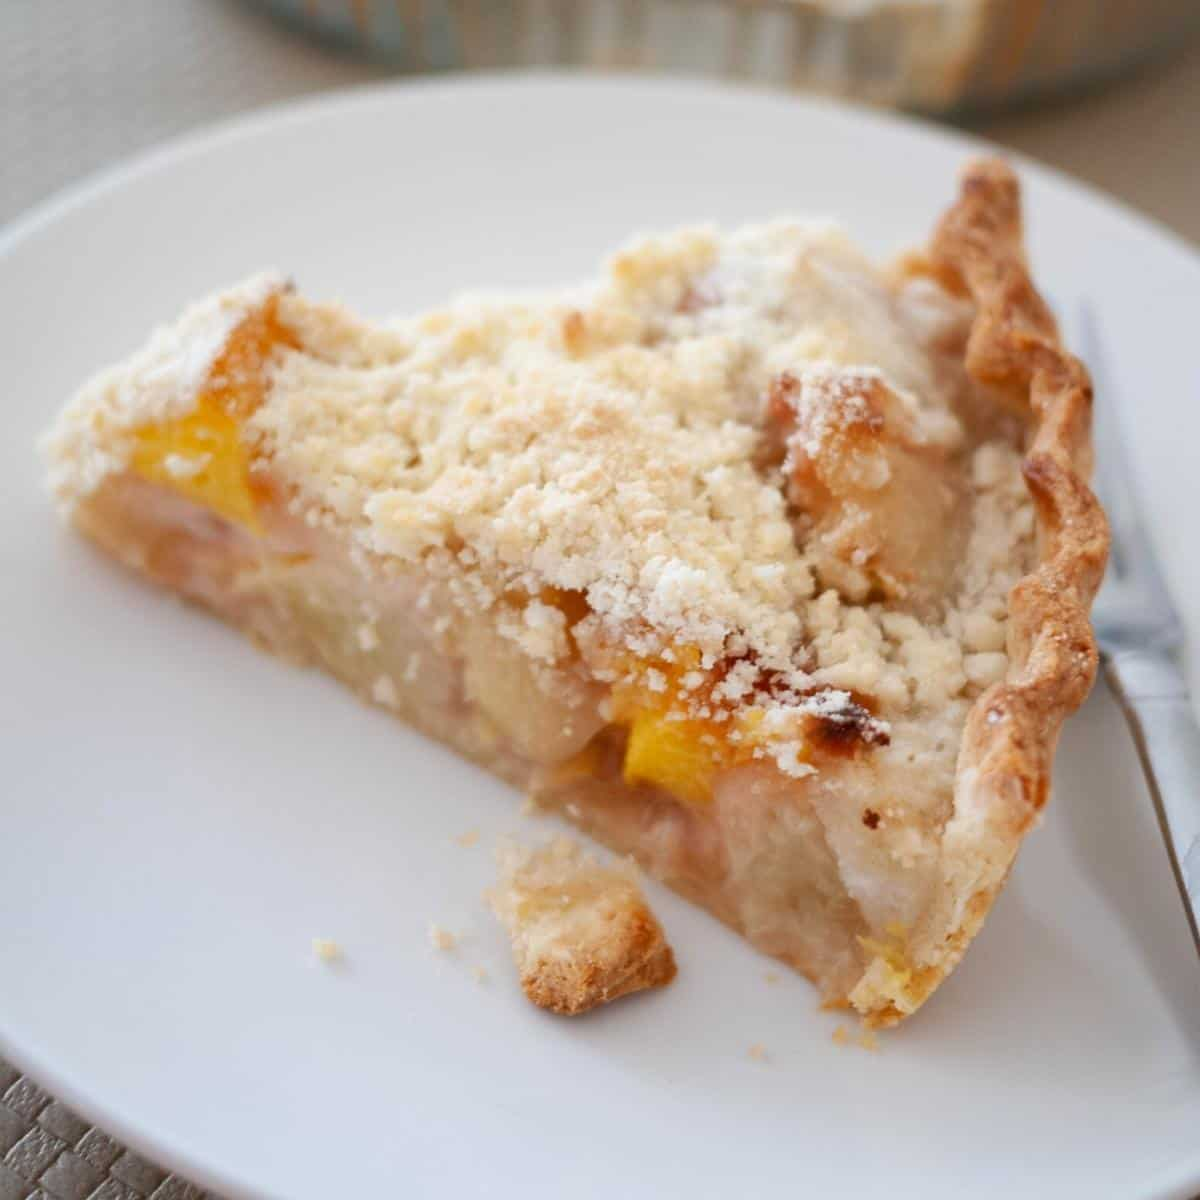 A slice of peach pie with crumble top.